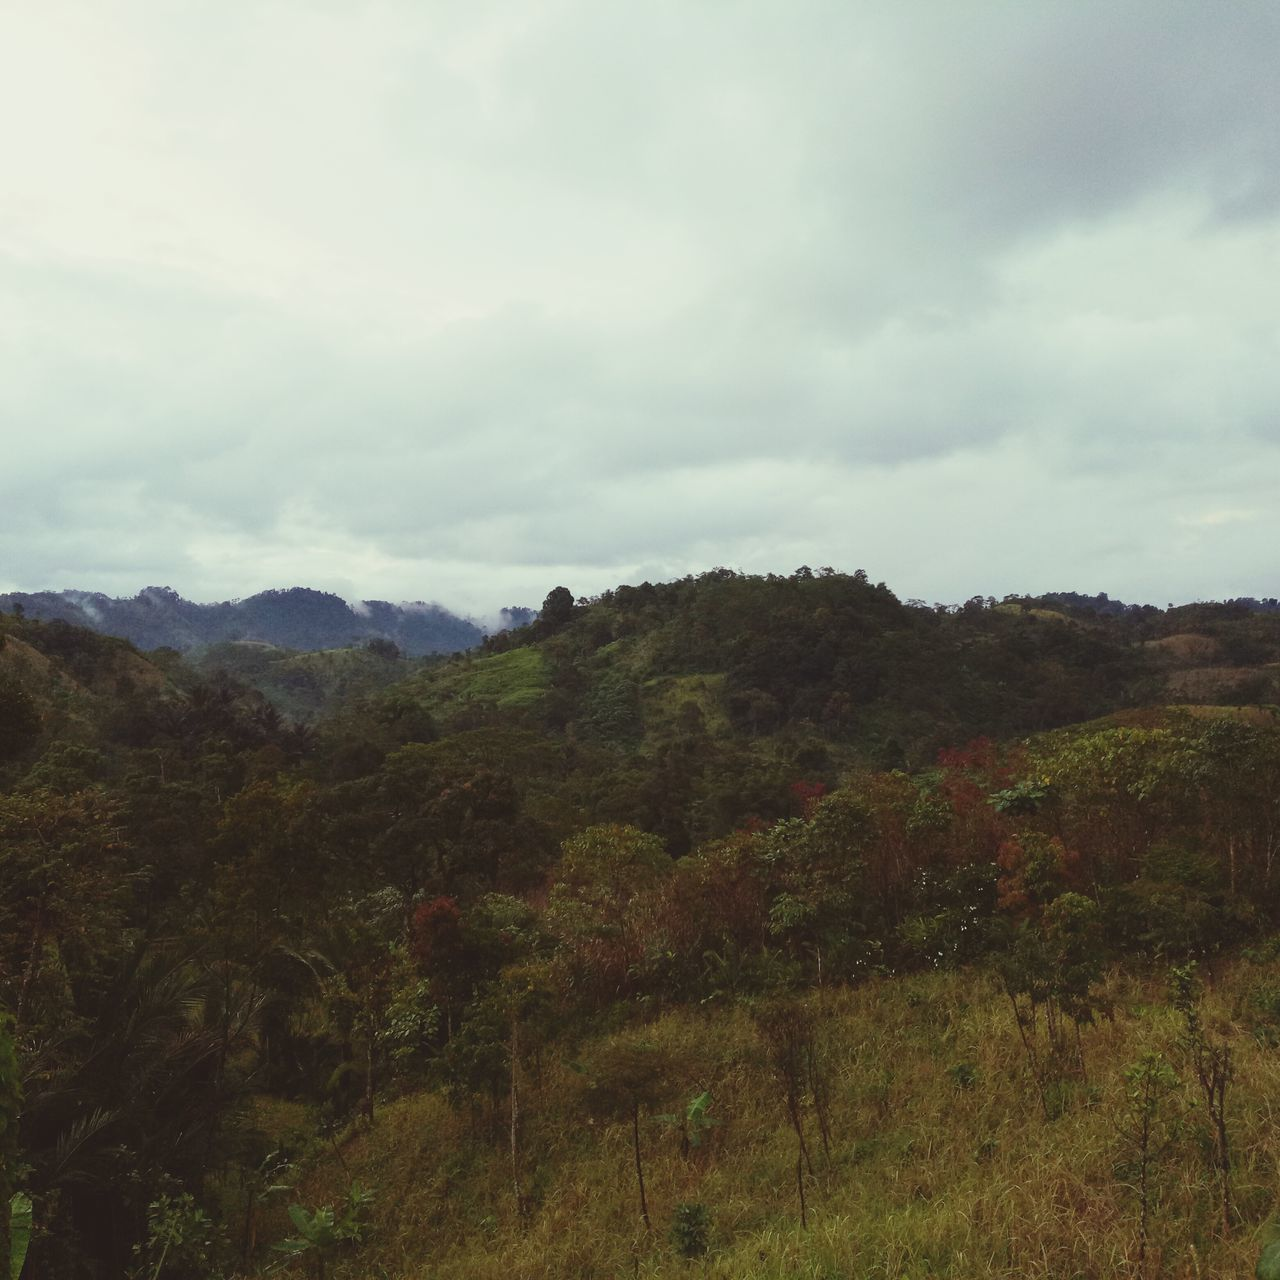 nature, landscape, no people, beauty in nature, tranquility, mountain, sky, tree, scenics, growth, forest, outdoors, day